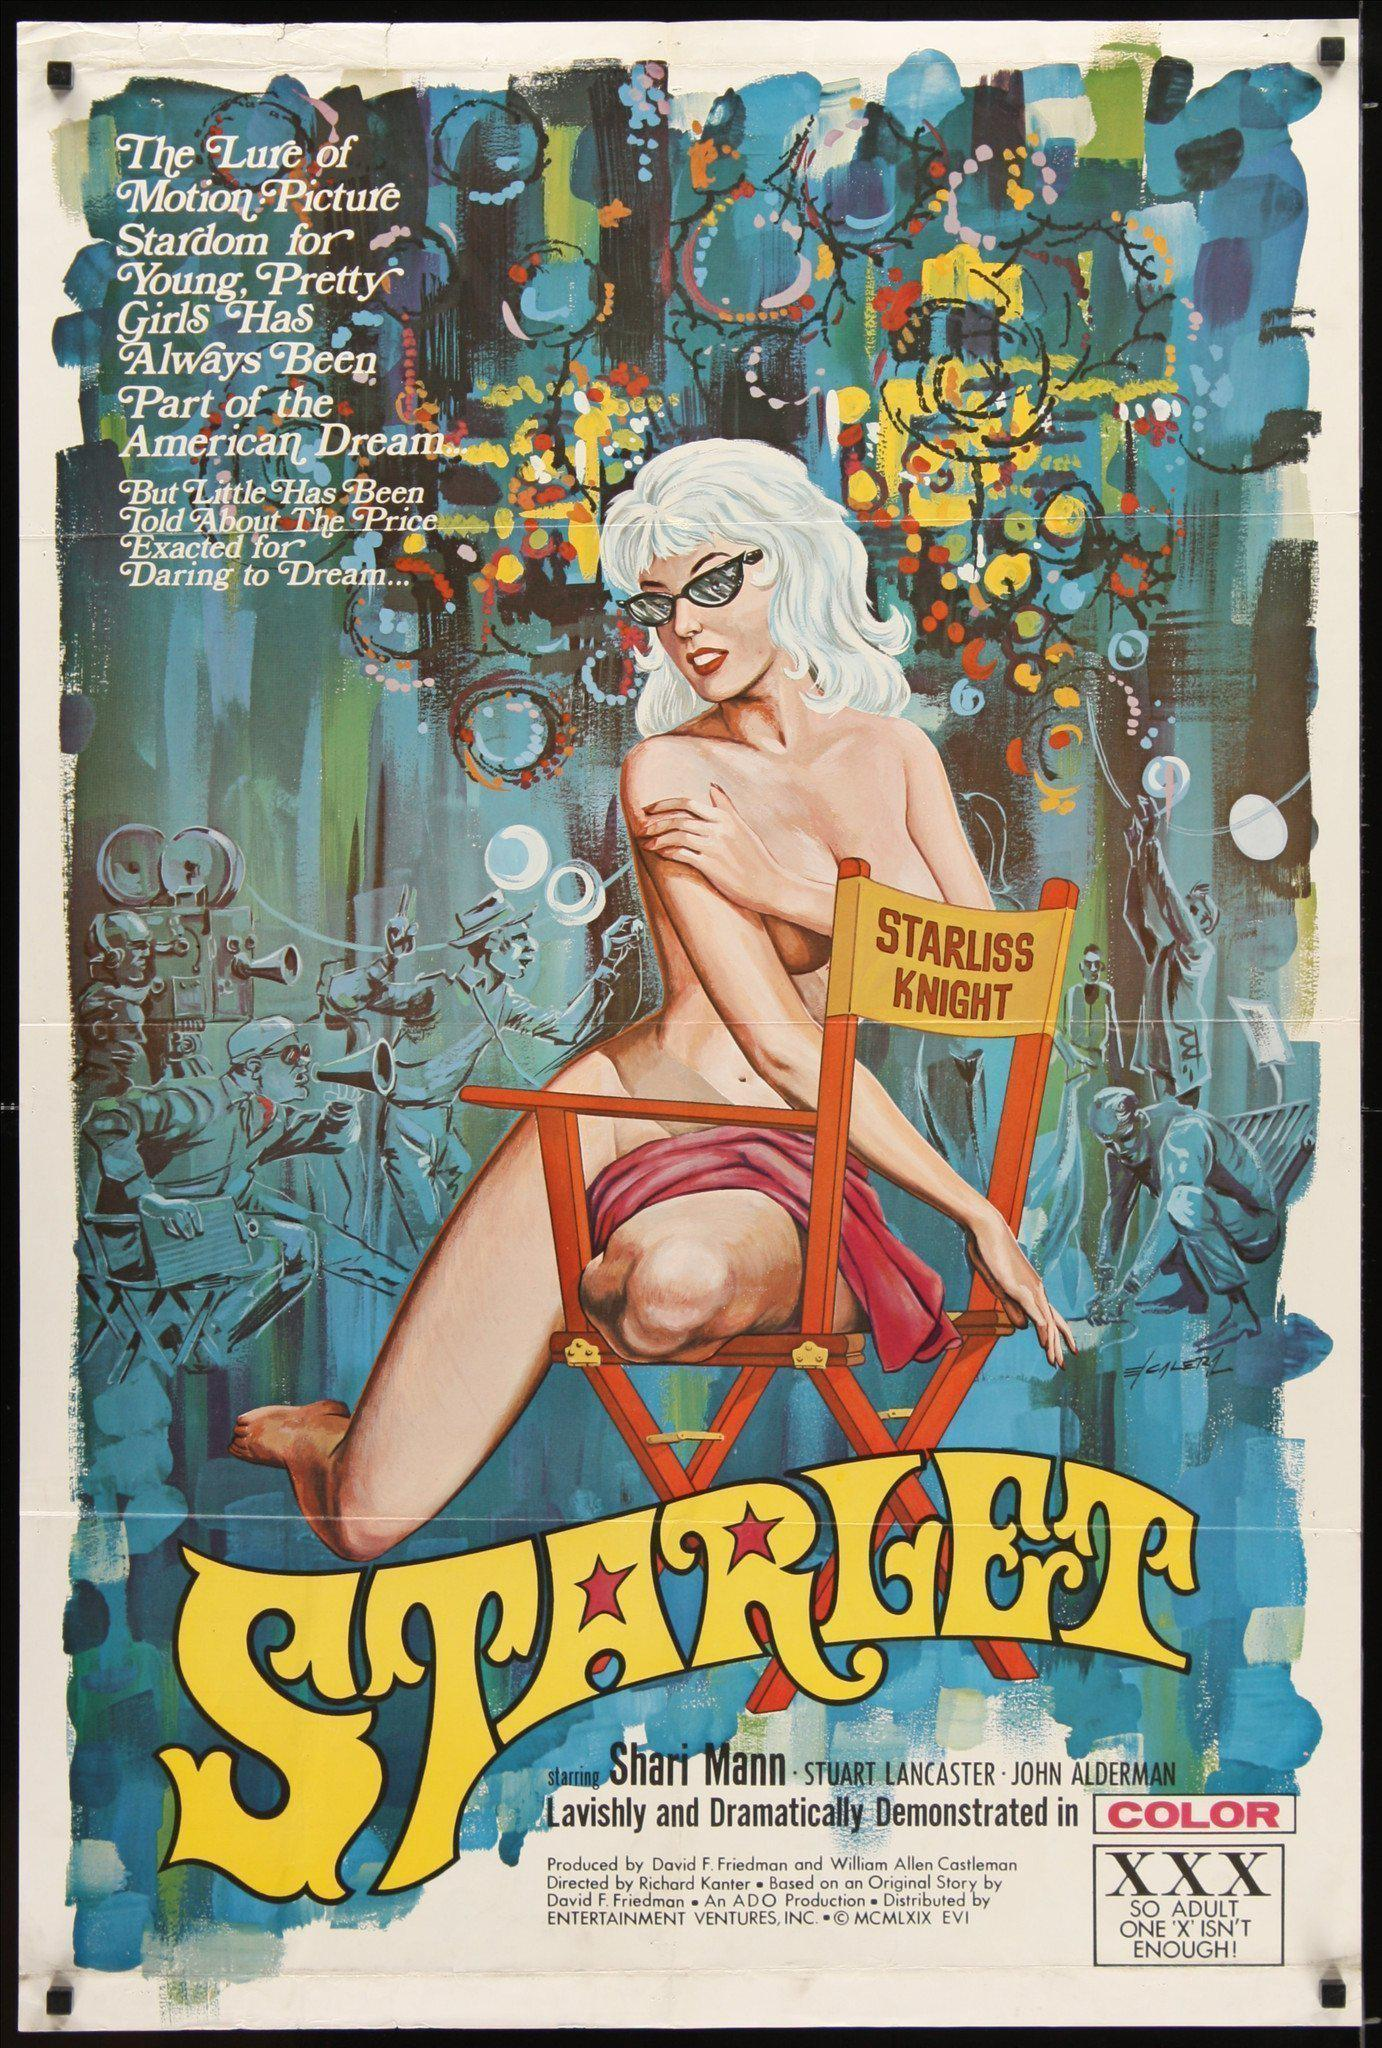 Starlet 1 Sheet (27x41) Original Vintage Movie Poster